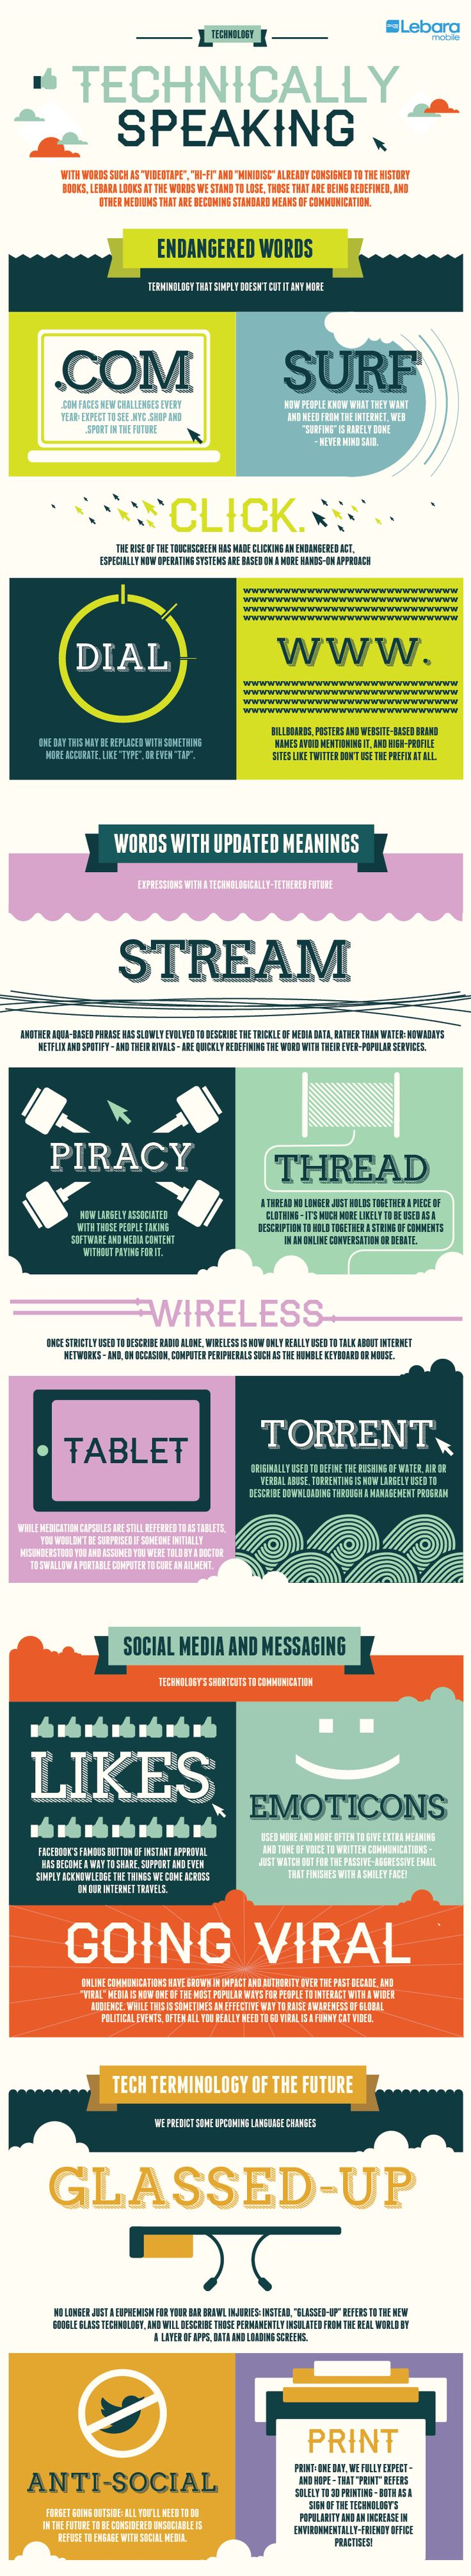 Technically Speaking: Updated Meanings of Common Words #infographic